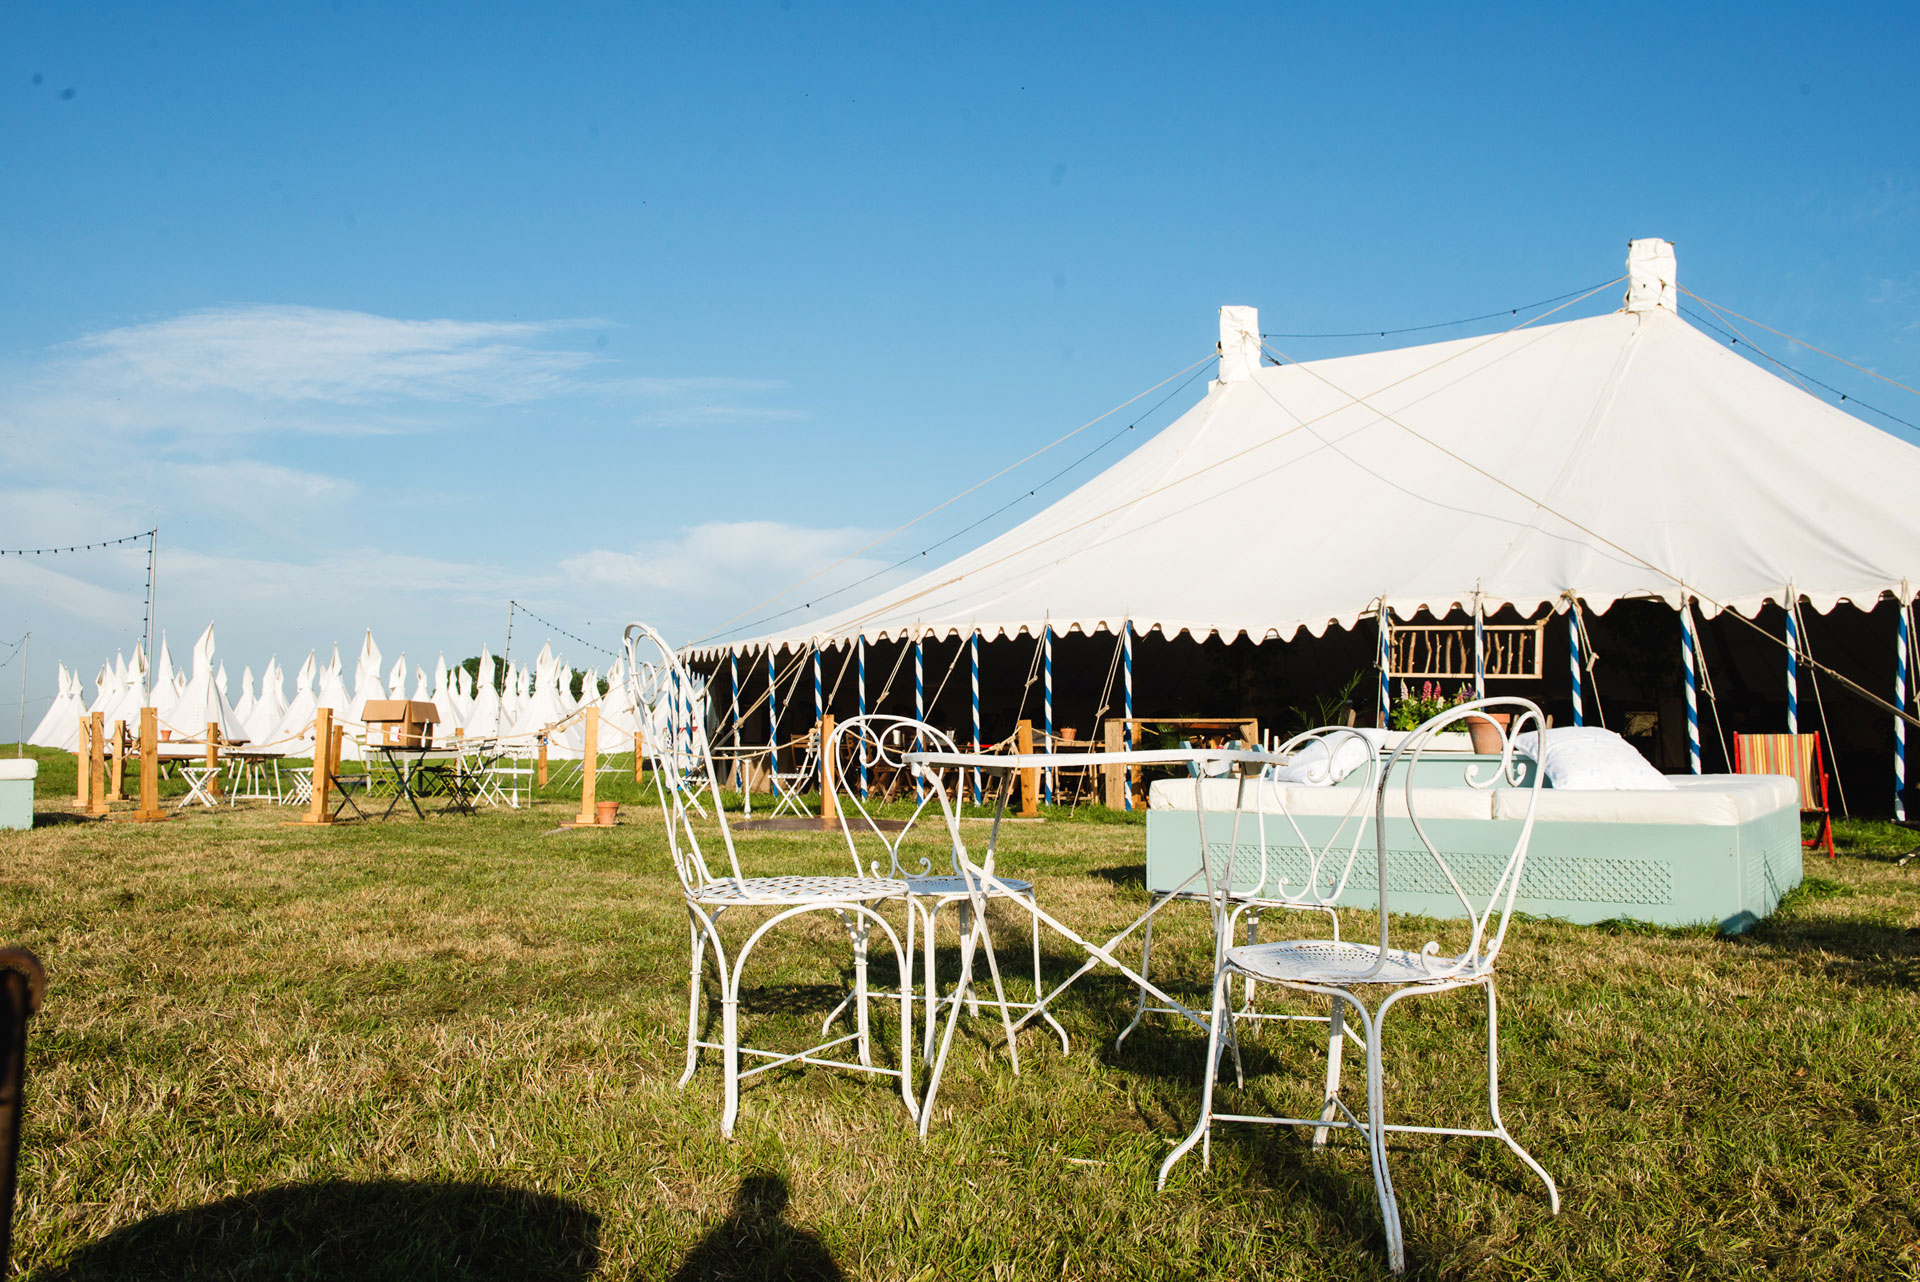 Pennard Orchard Boutique Camping Bar and Restaurant